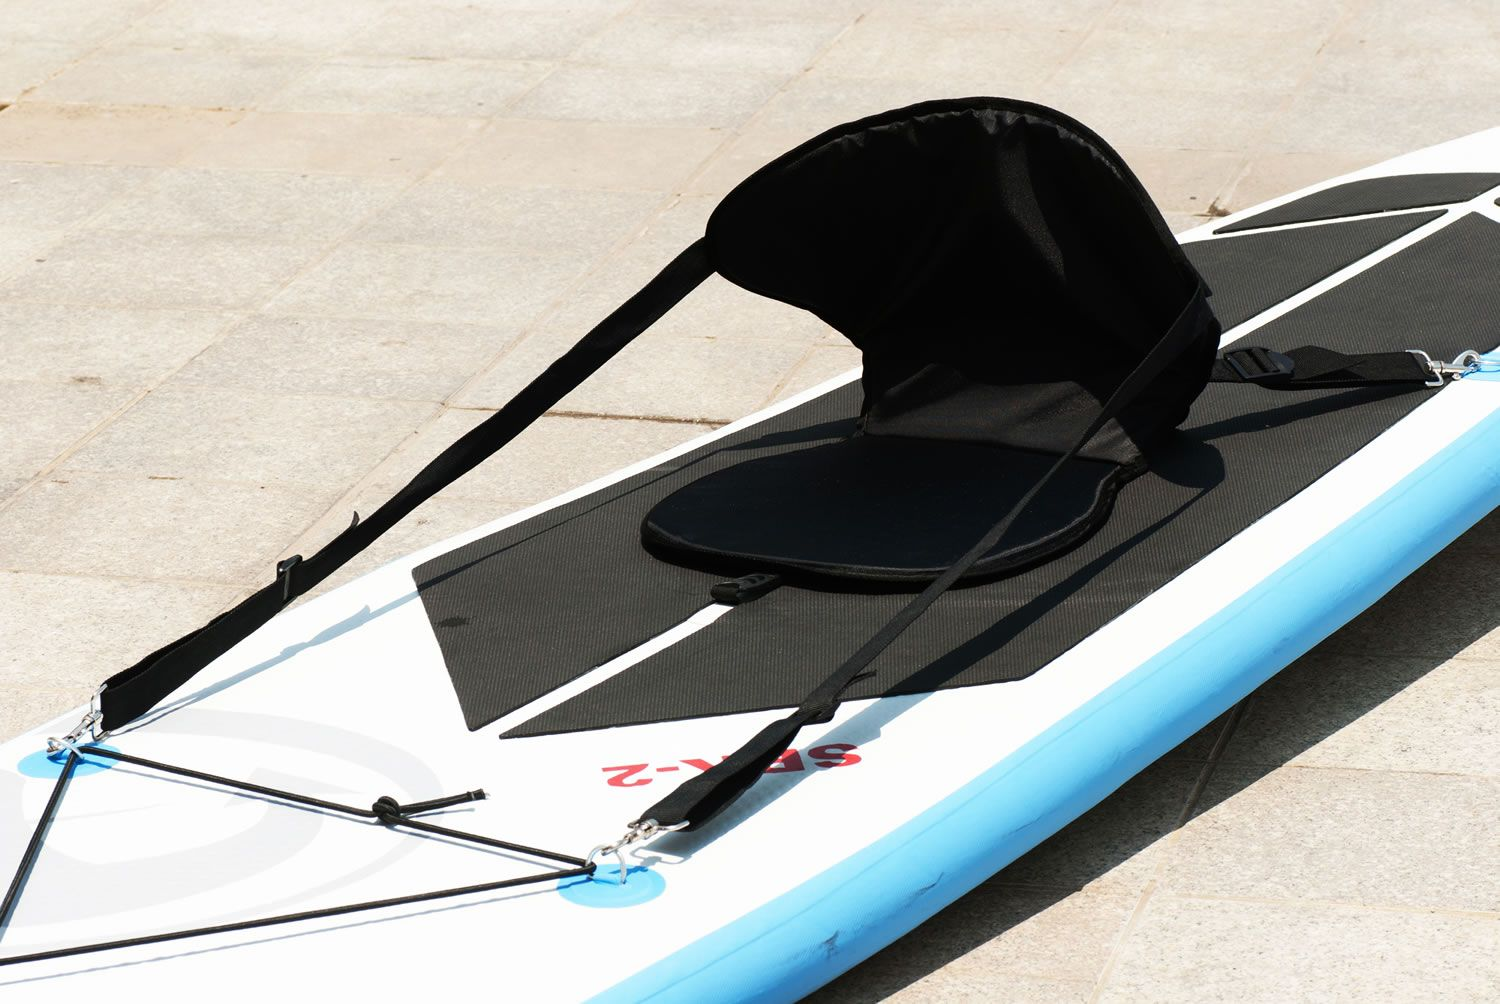 Turn your SPK 1 or SPK 2 SUP board into a kayak with this kayak seat